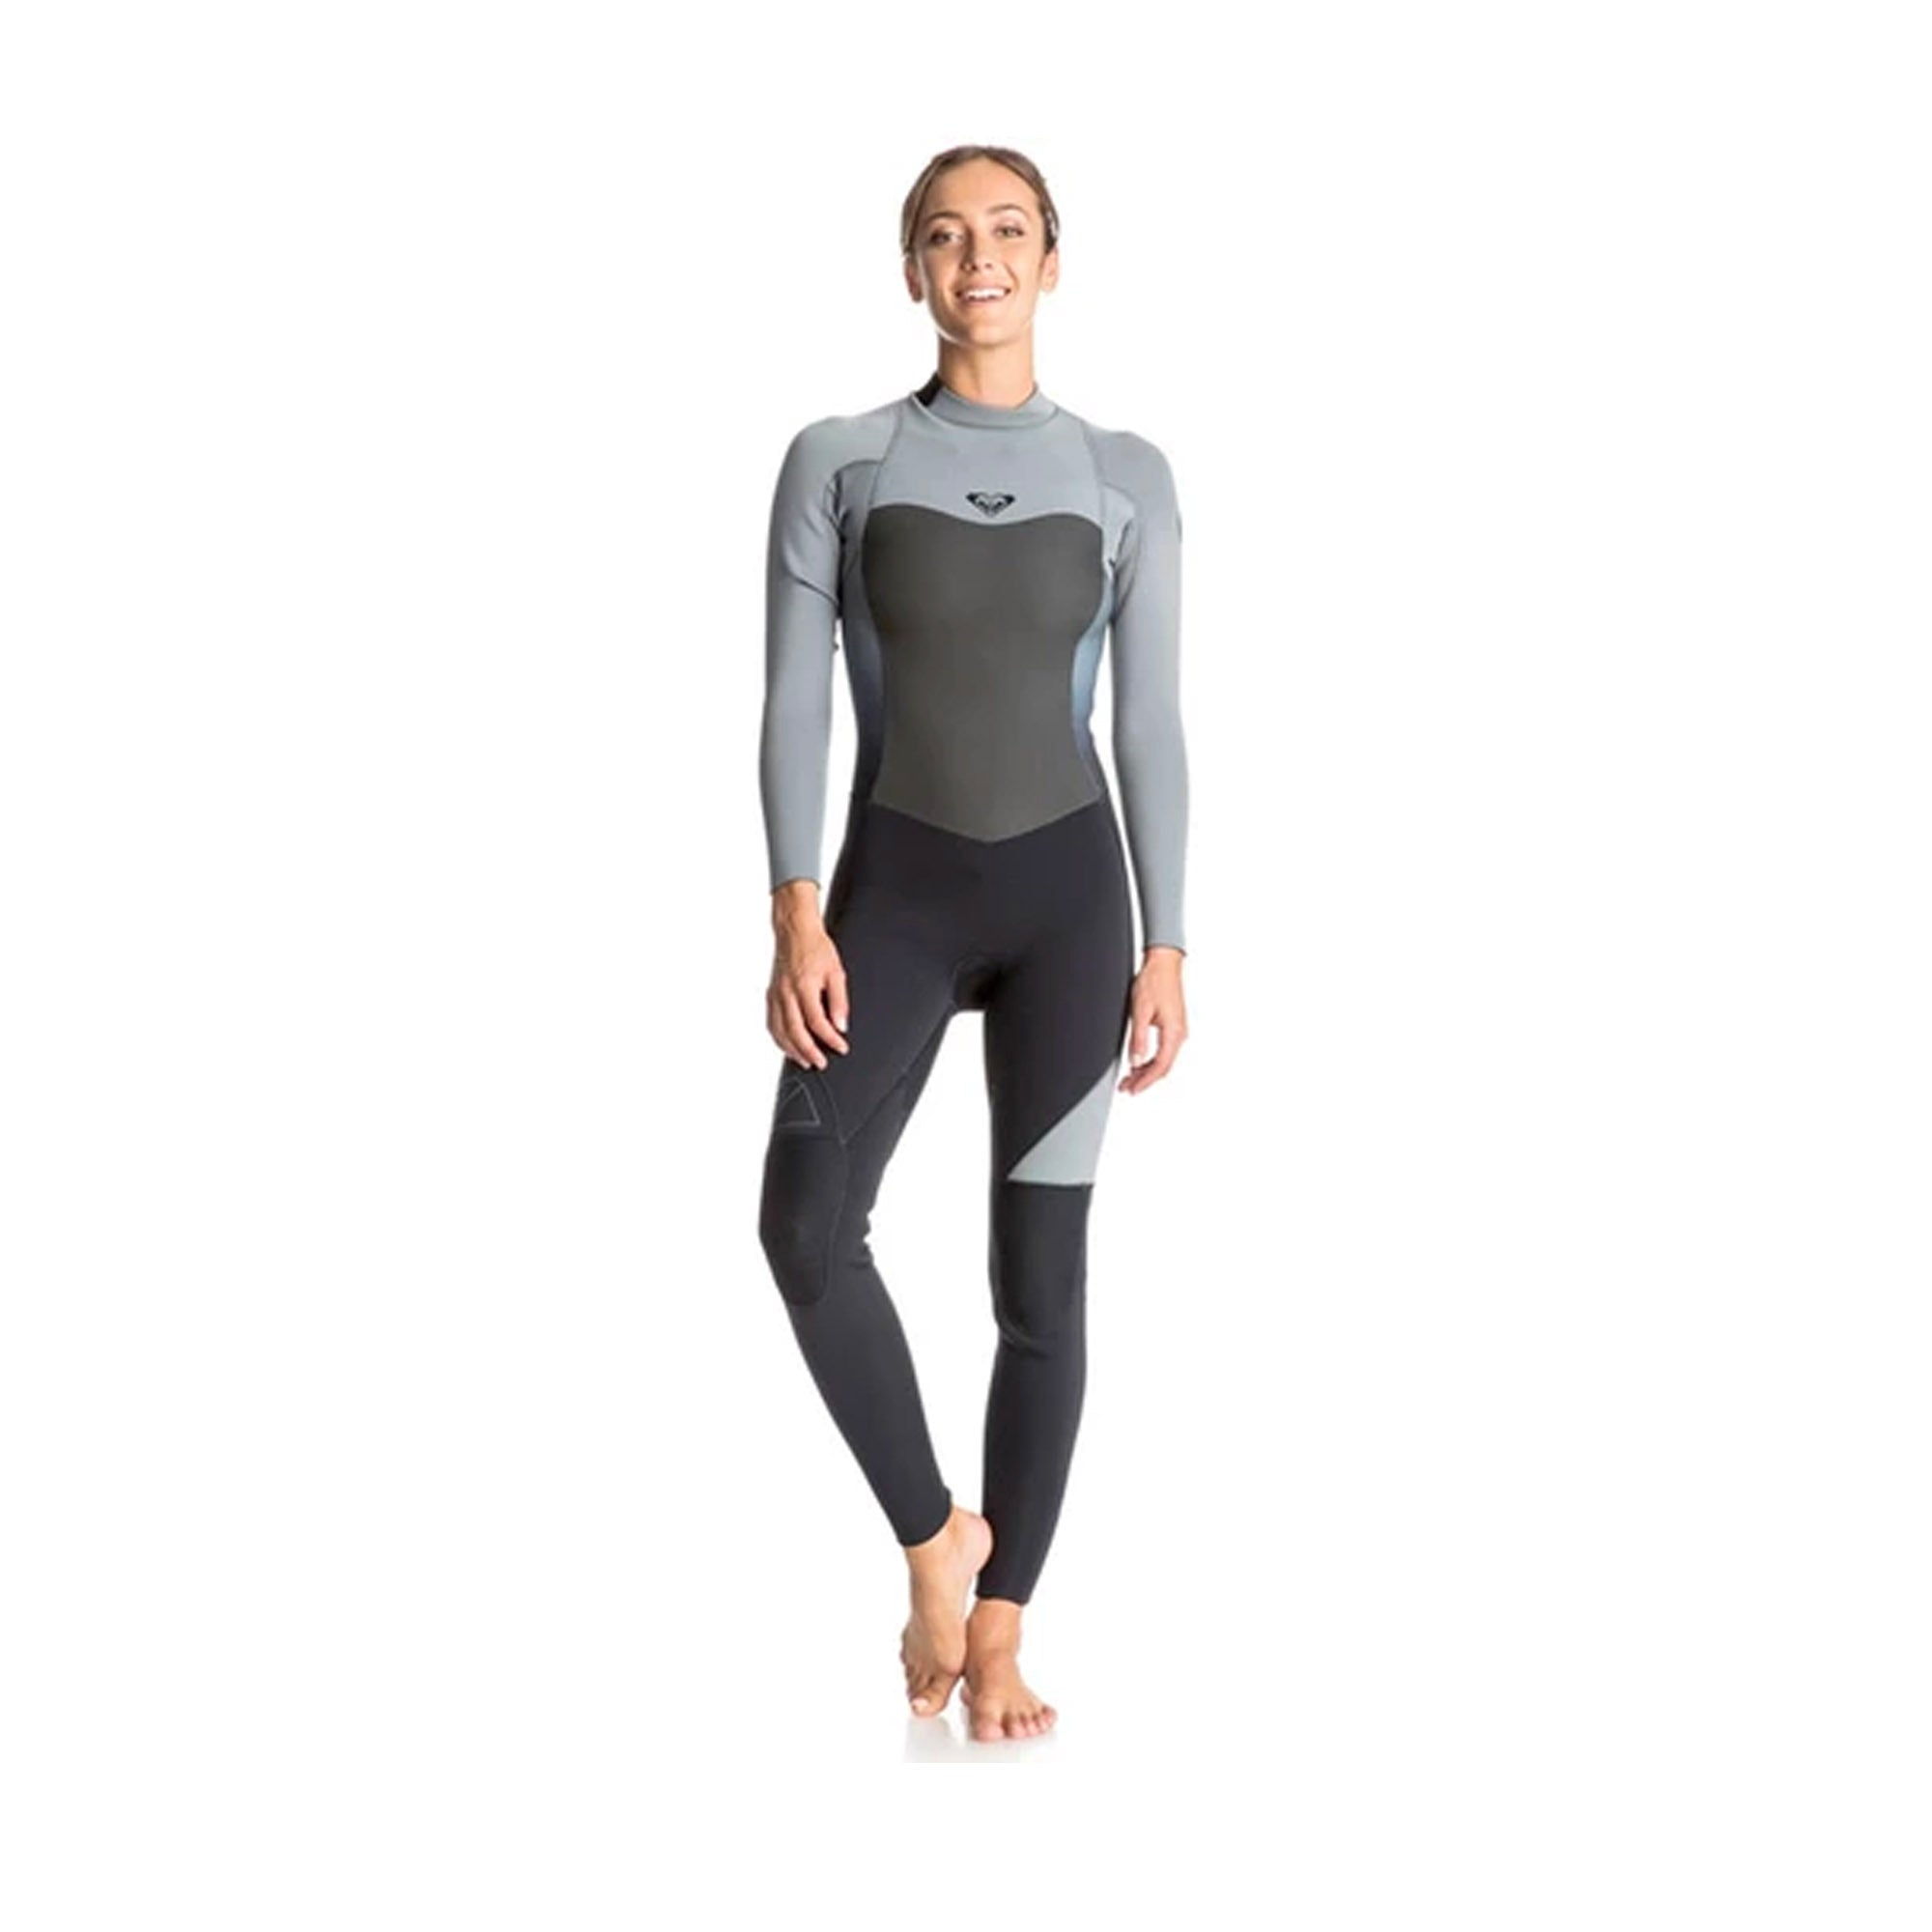 Roxy Syncro 3/2mm Women's Back Zip Fullsuit Wetsuit